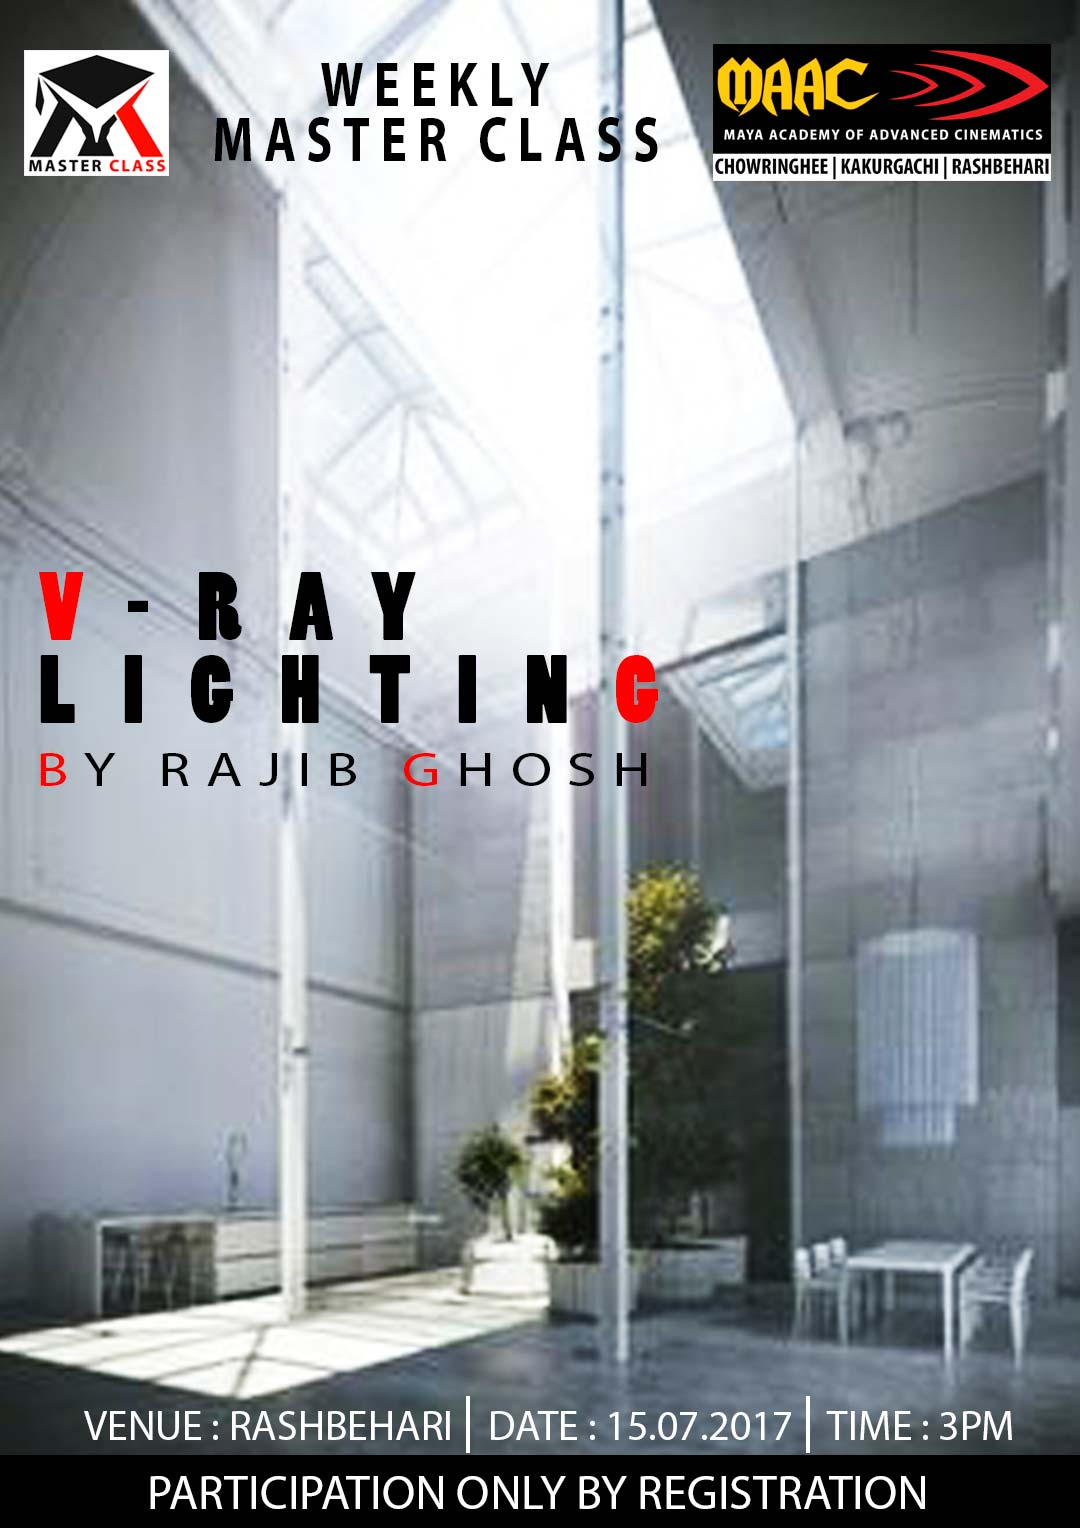 Weekly Master Class on V-Ray Lighting - Rajib Ghosh